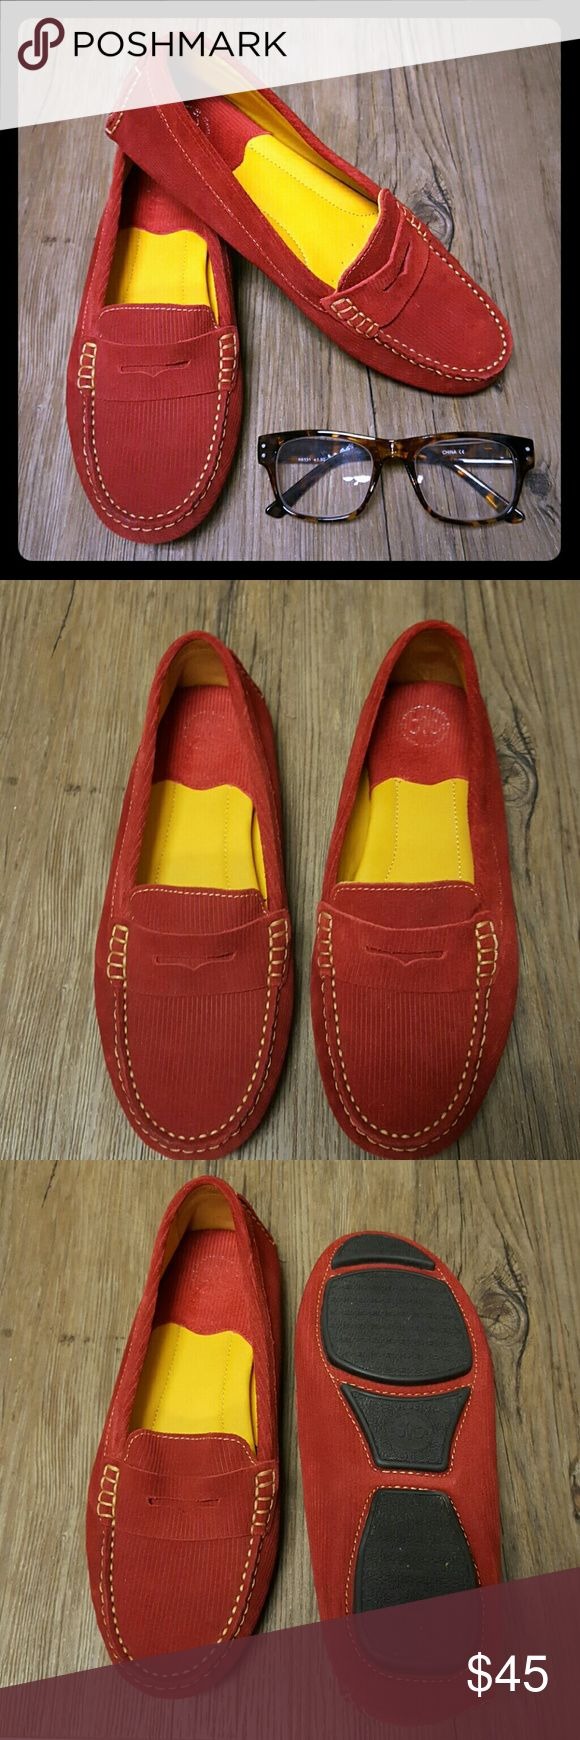 Johnston & Murphy Cord Driver Johnston & Murphy Cord Driver *red corduroy upper *sheepskin lining for excellent feel and wear *footbed is cushioned with memory foam *flexible rubber outsole for added traction *like new, excellent condition Johnston & Murphy Shoes Flats & Loafers